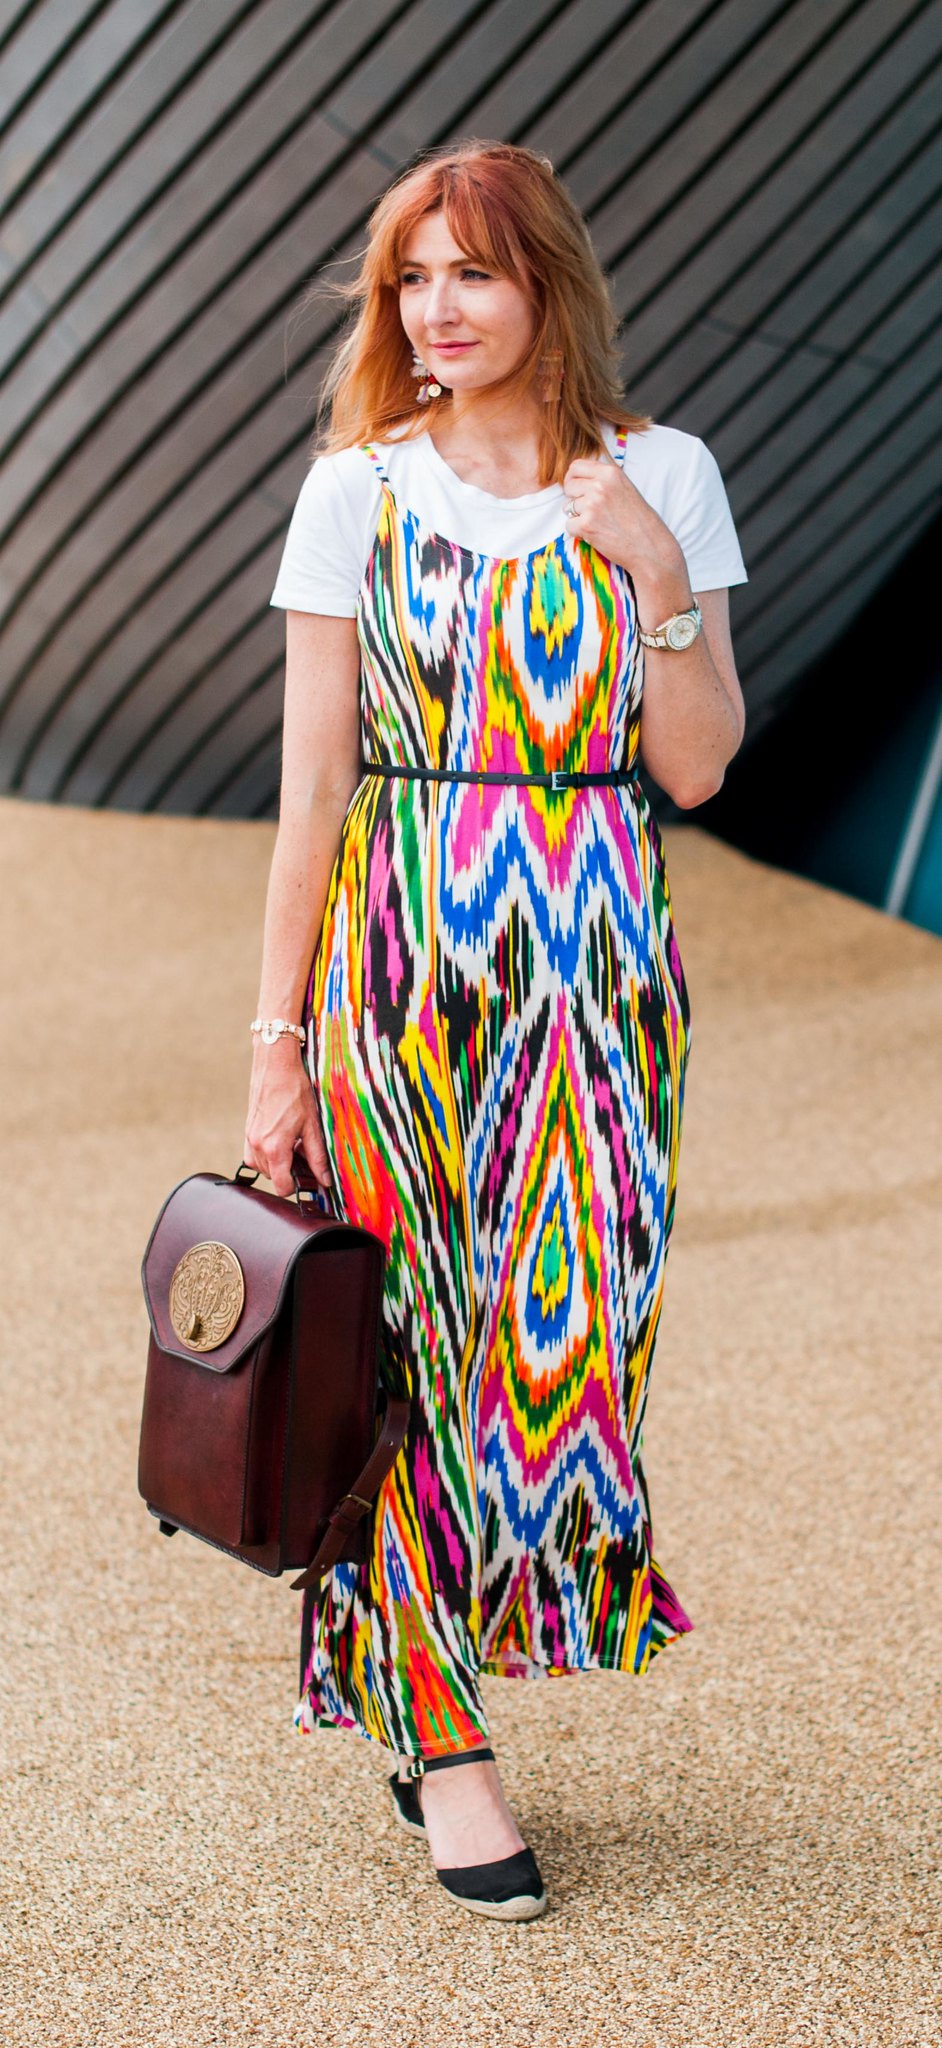 A rainbow-bright summer maxi dress styled in 90s style: Multi-coloured strappy maxi dress \ plain white t-shirt tee \ black wedge espadrilles \ Beara Beara brown leather backpack with antique brass plaque | Not Dressed As Lamb, over 40 style